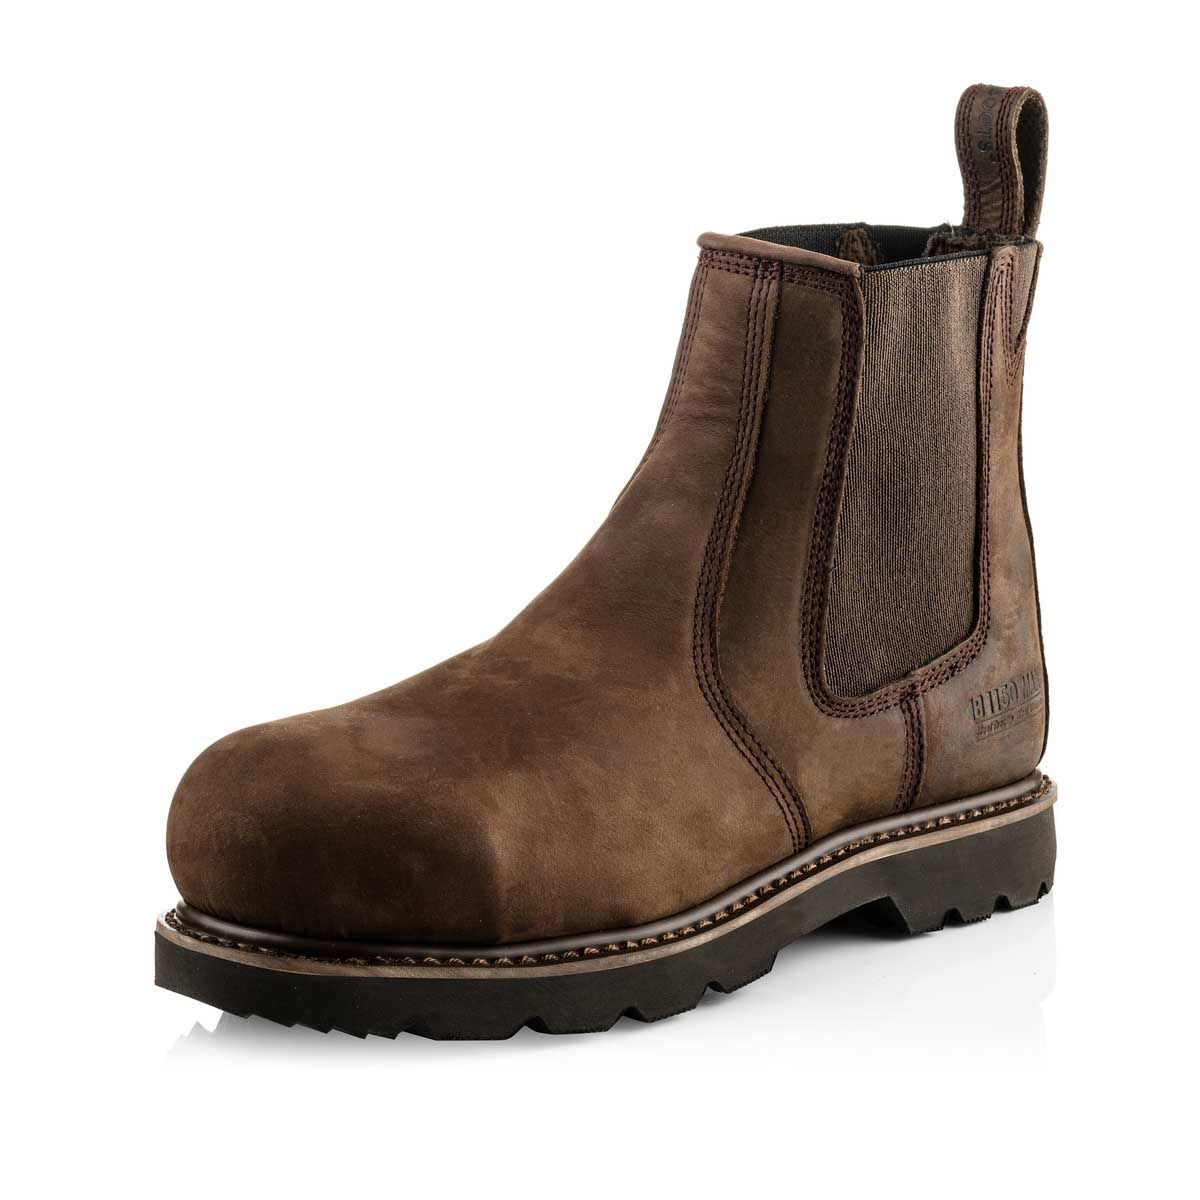 Buckler B1150SM MAX Buckflex Goodyear Welted Full Safety Dealer Boots Brown